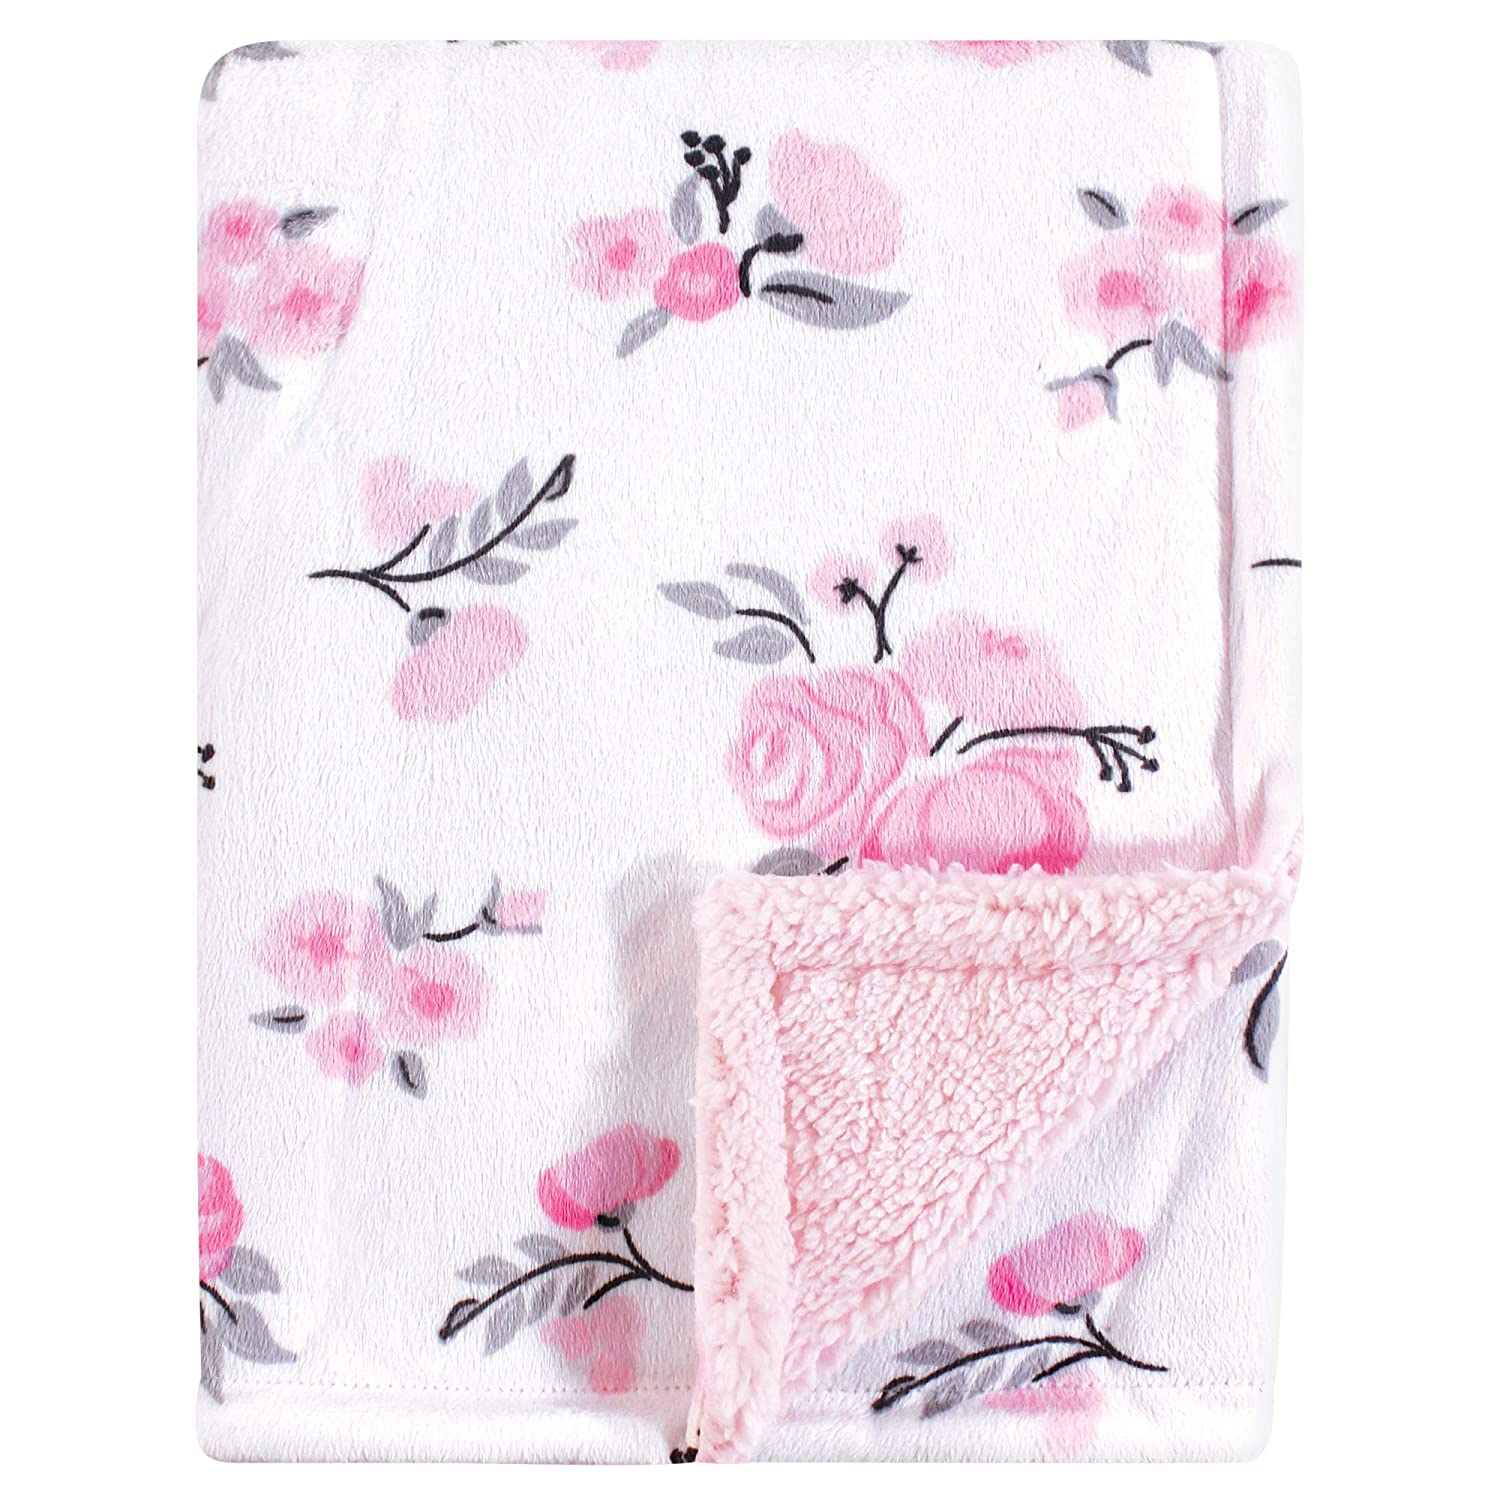 Hudson Baby Mink Blanket with Sherpa Backing, Pink Floral, One Size BabyVision Inc. Children' s Apparel 52219